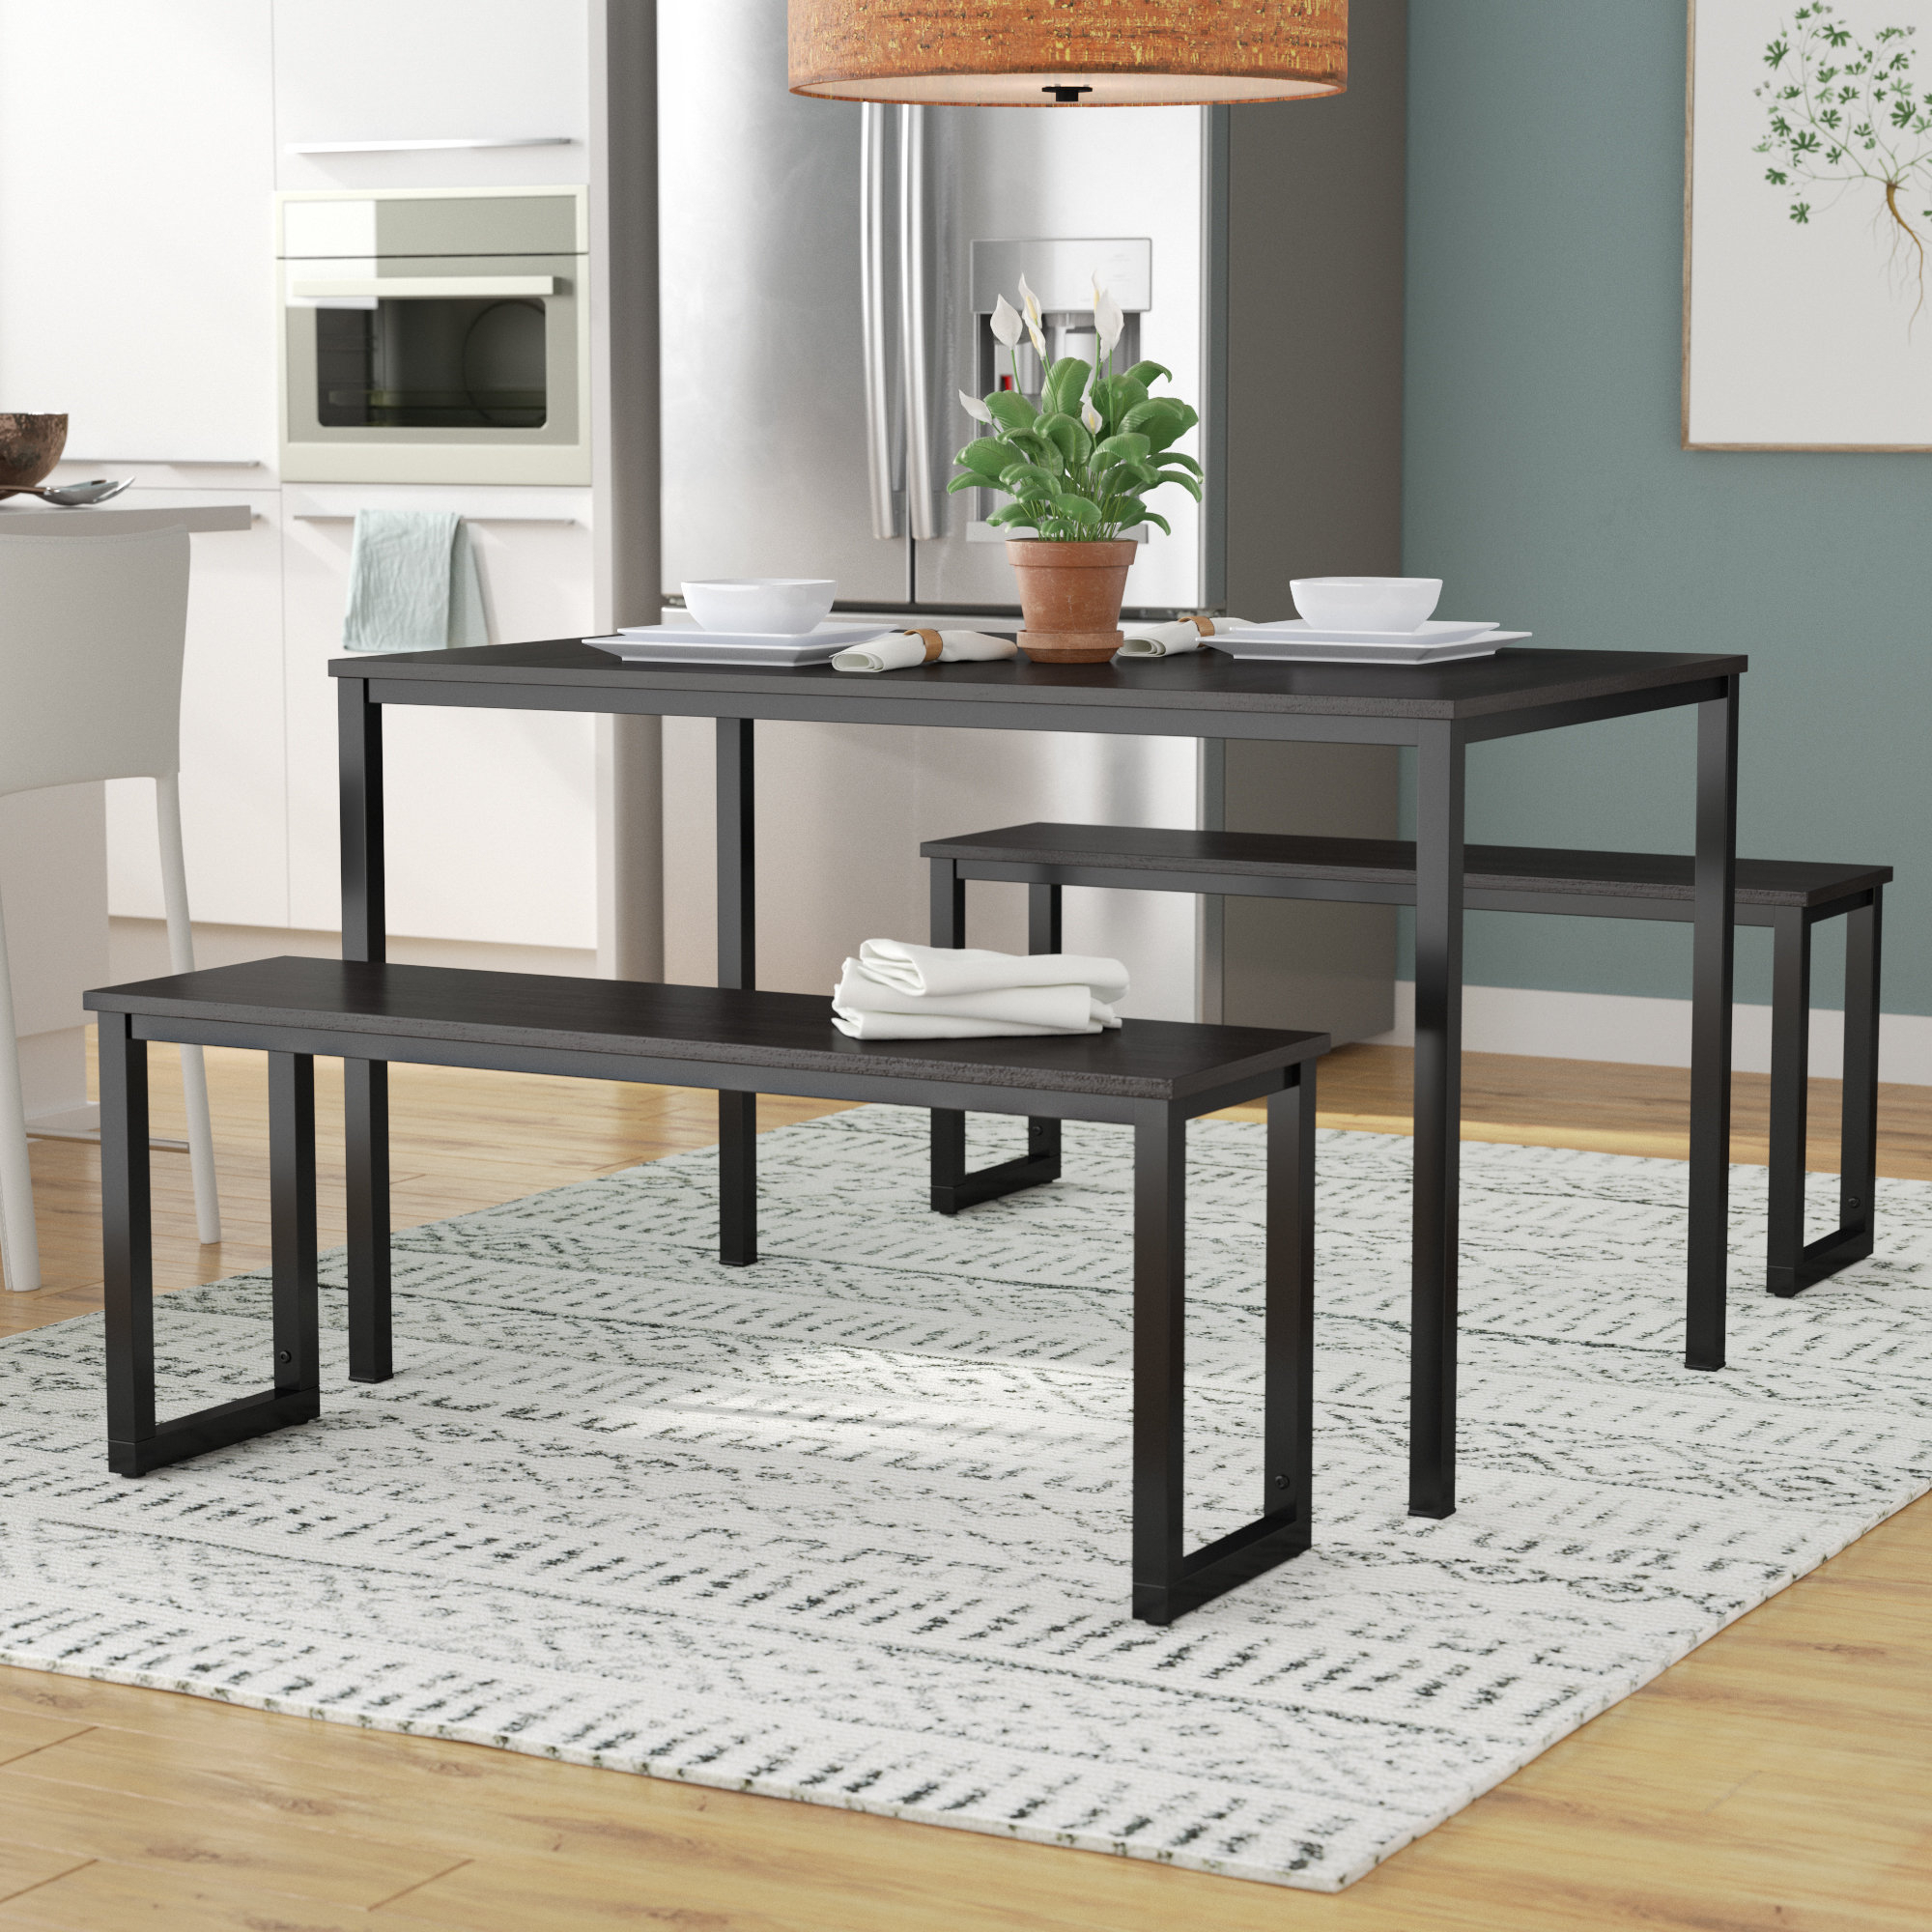 3 Piece Dining Sets In Well Known Frida 3 Piece Dining Table Set (View 3 of 20)